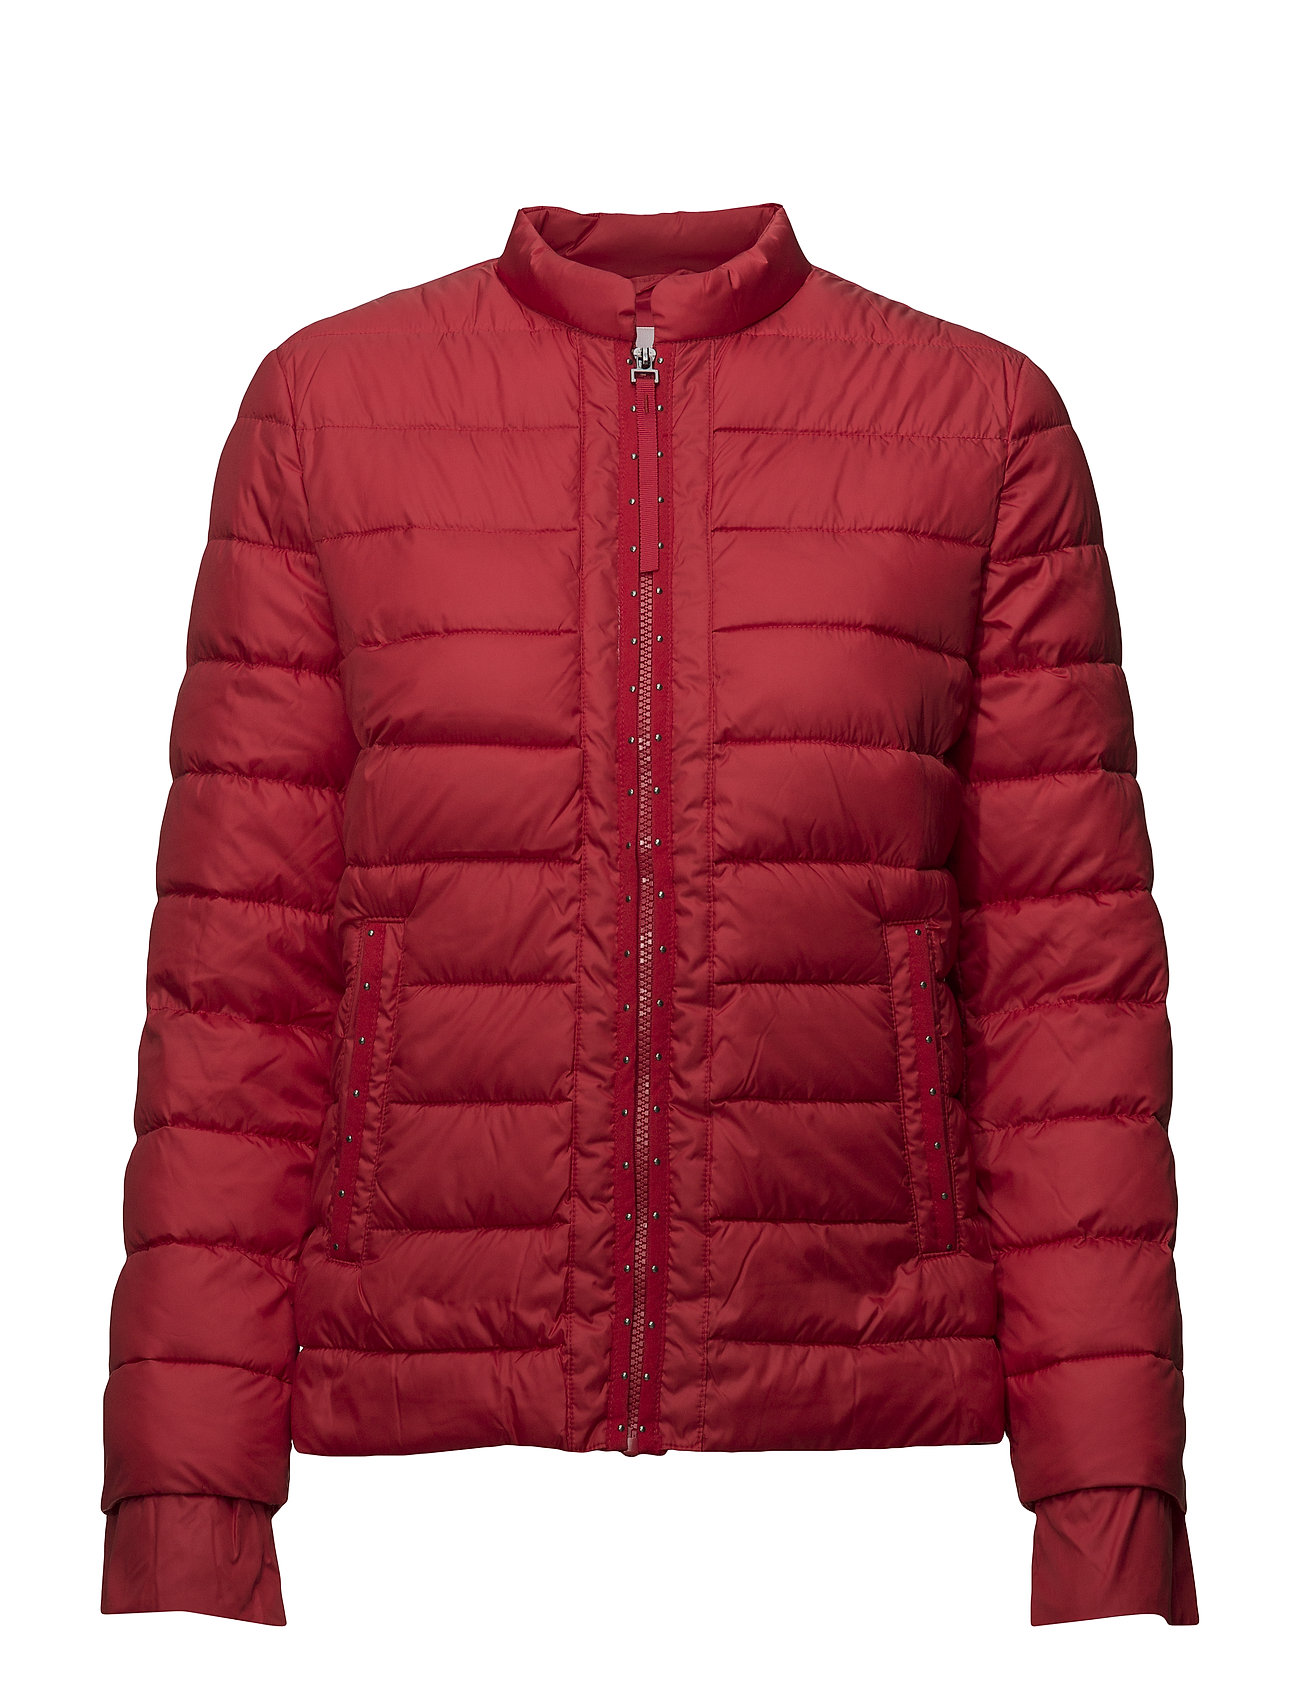 Gerry Weber OUTDOOR JACKET NO WO - RED